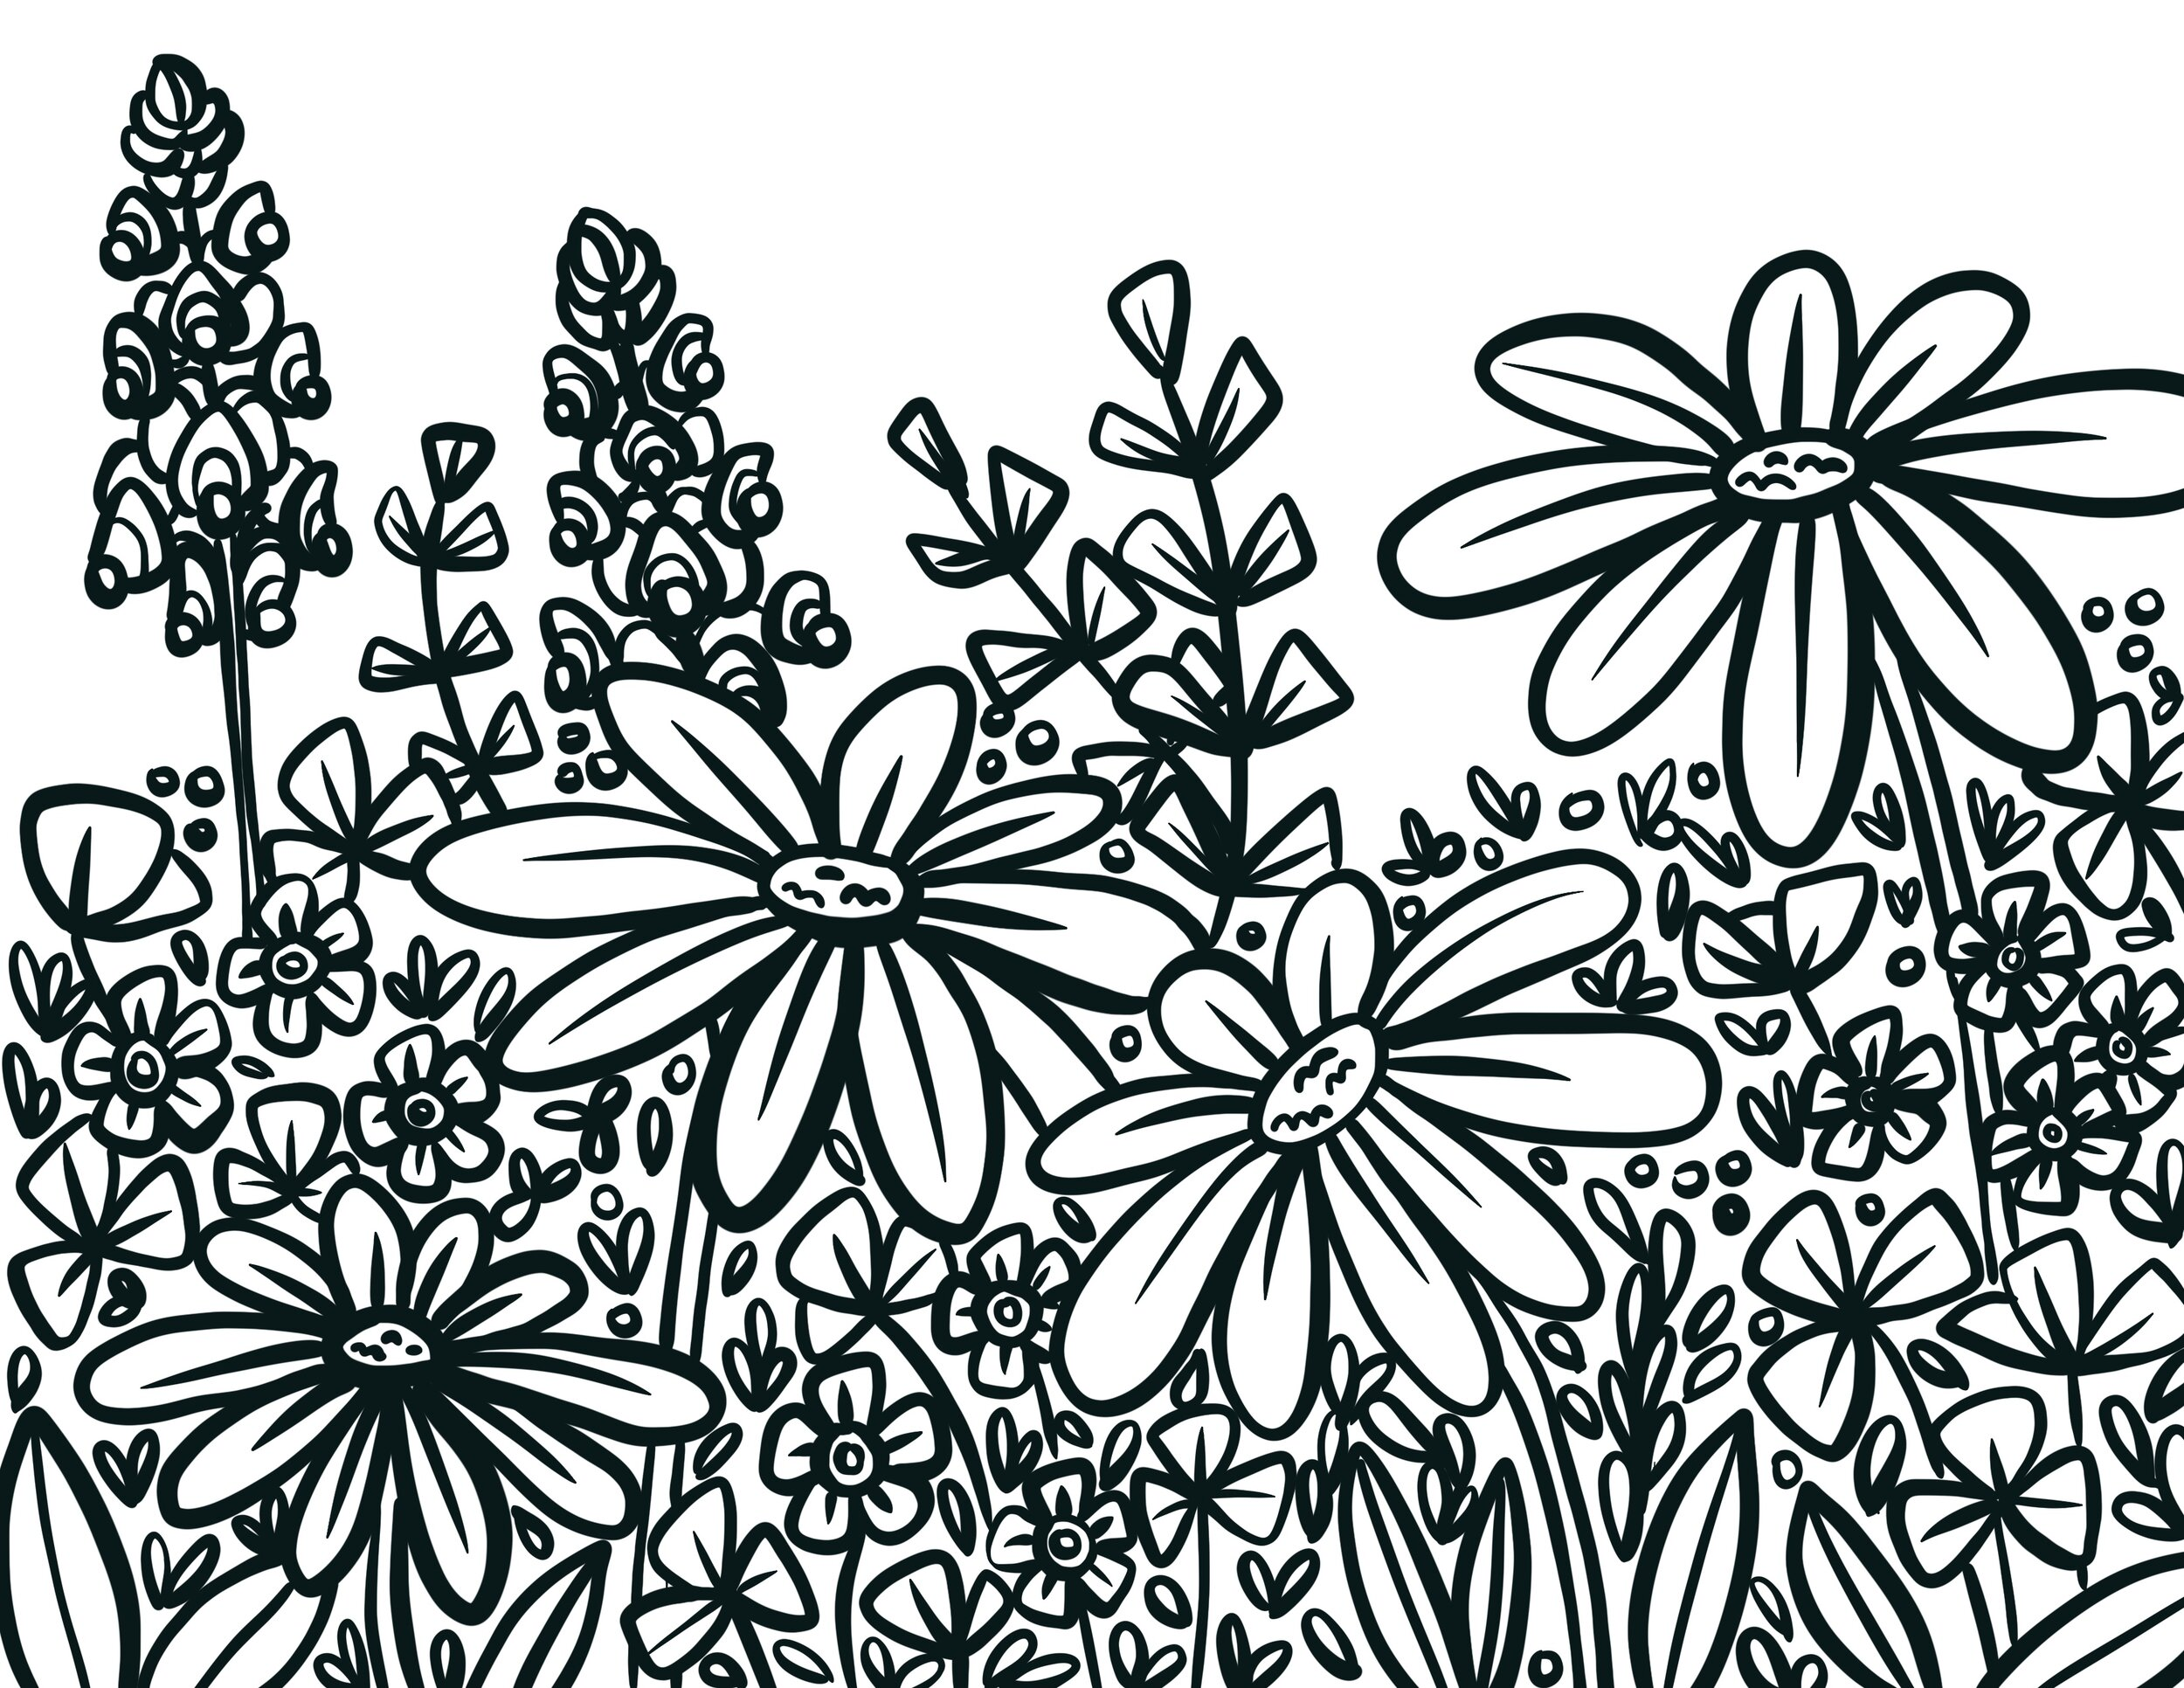 FREE Adult Coloring Pages - Happiness is Homemade | 773x1000